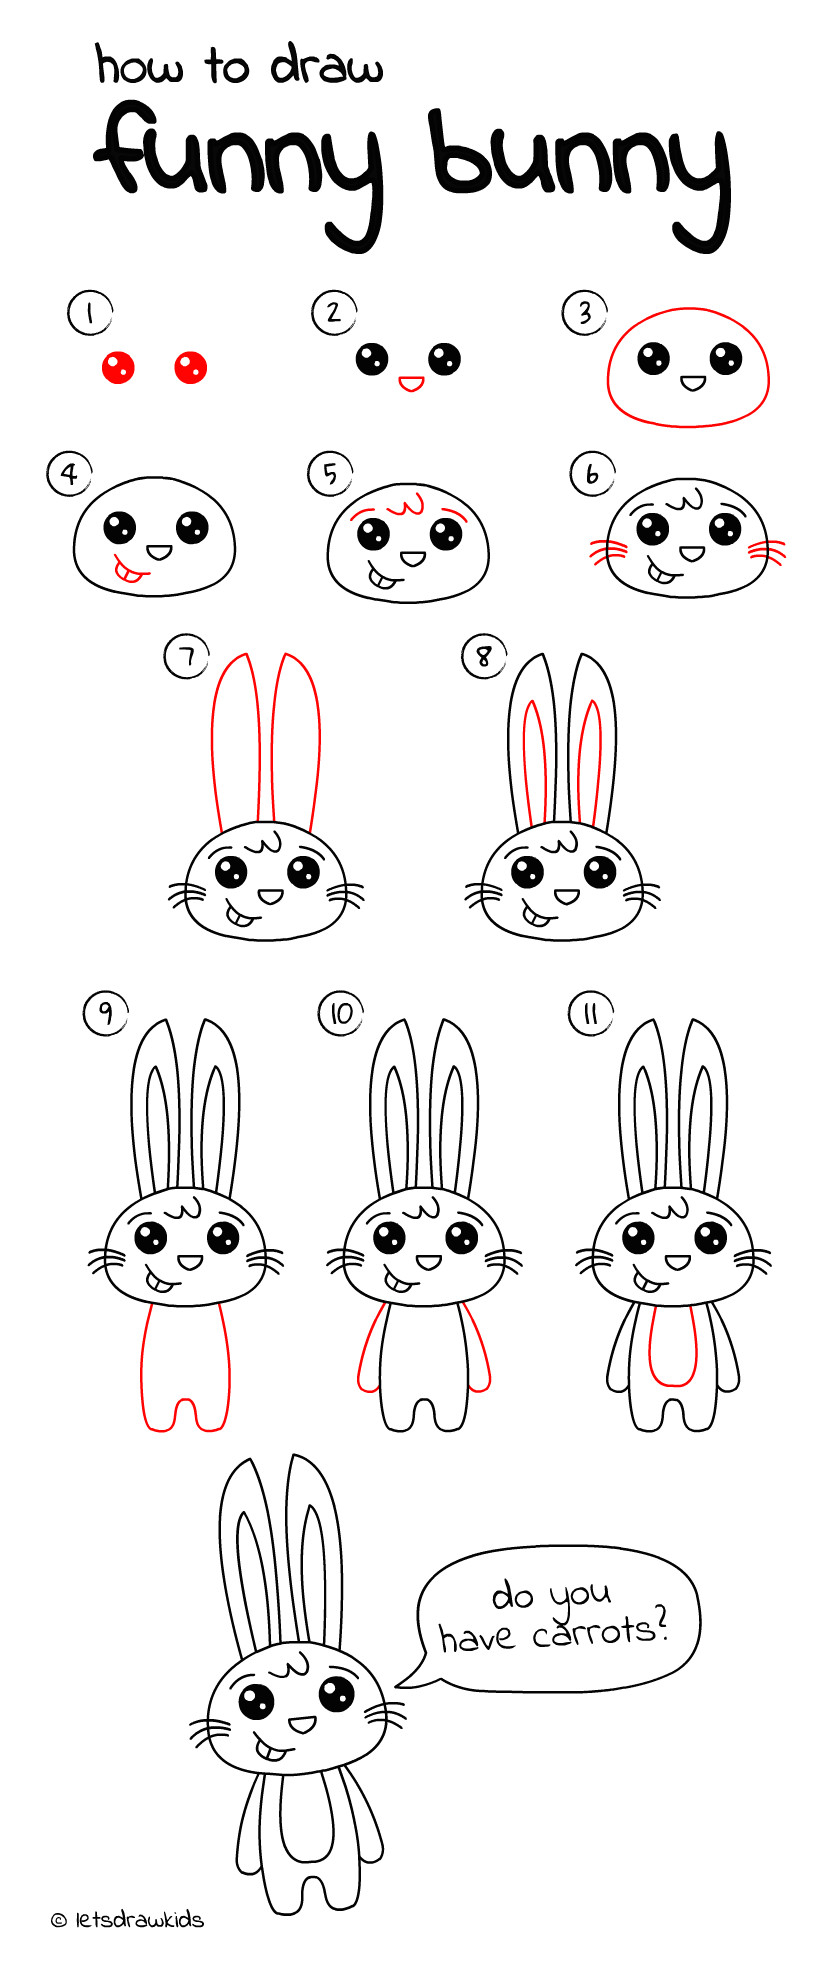 discover more about drawing tips check the webpage for more info